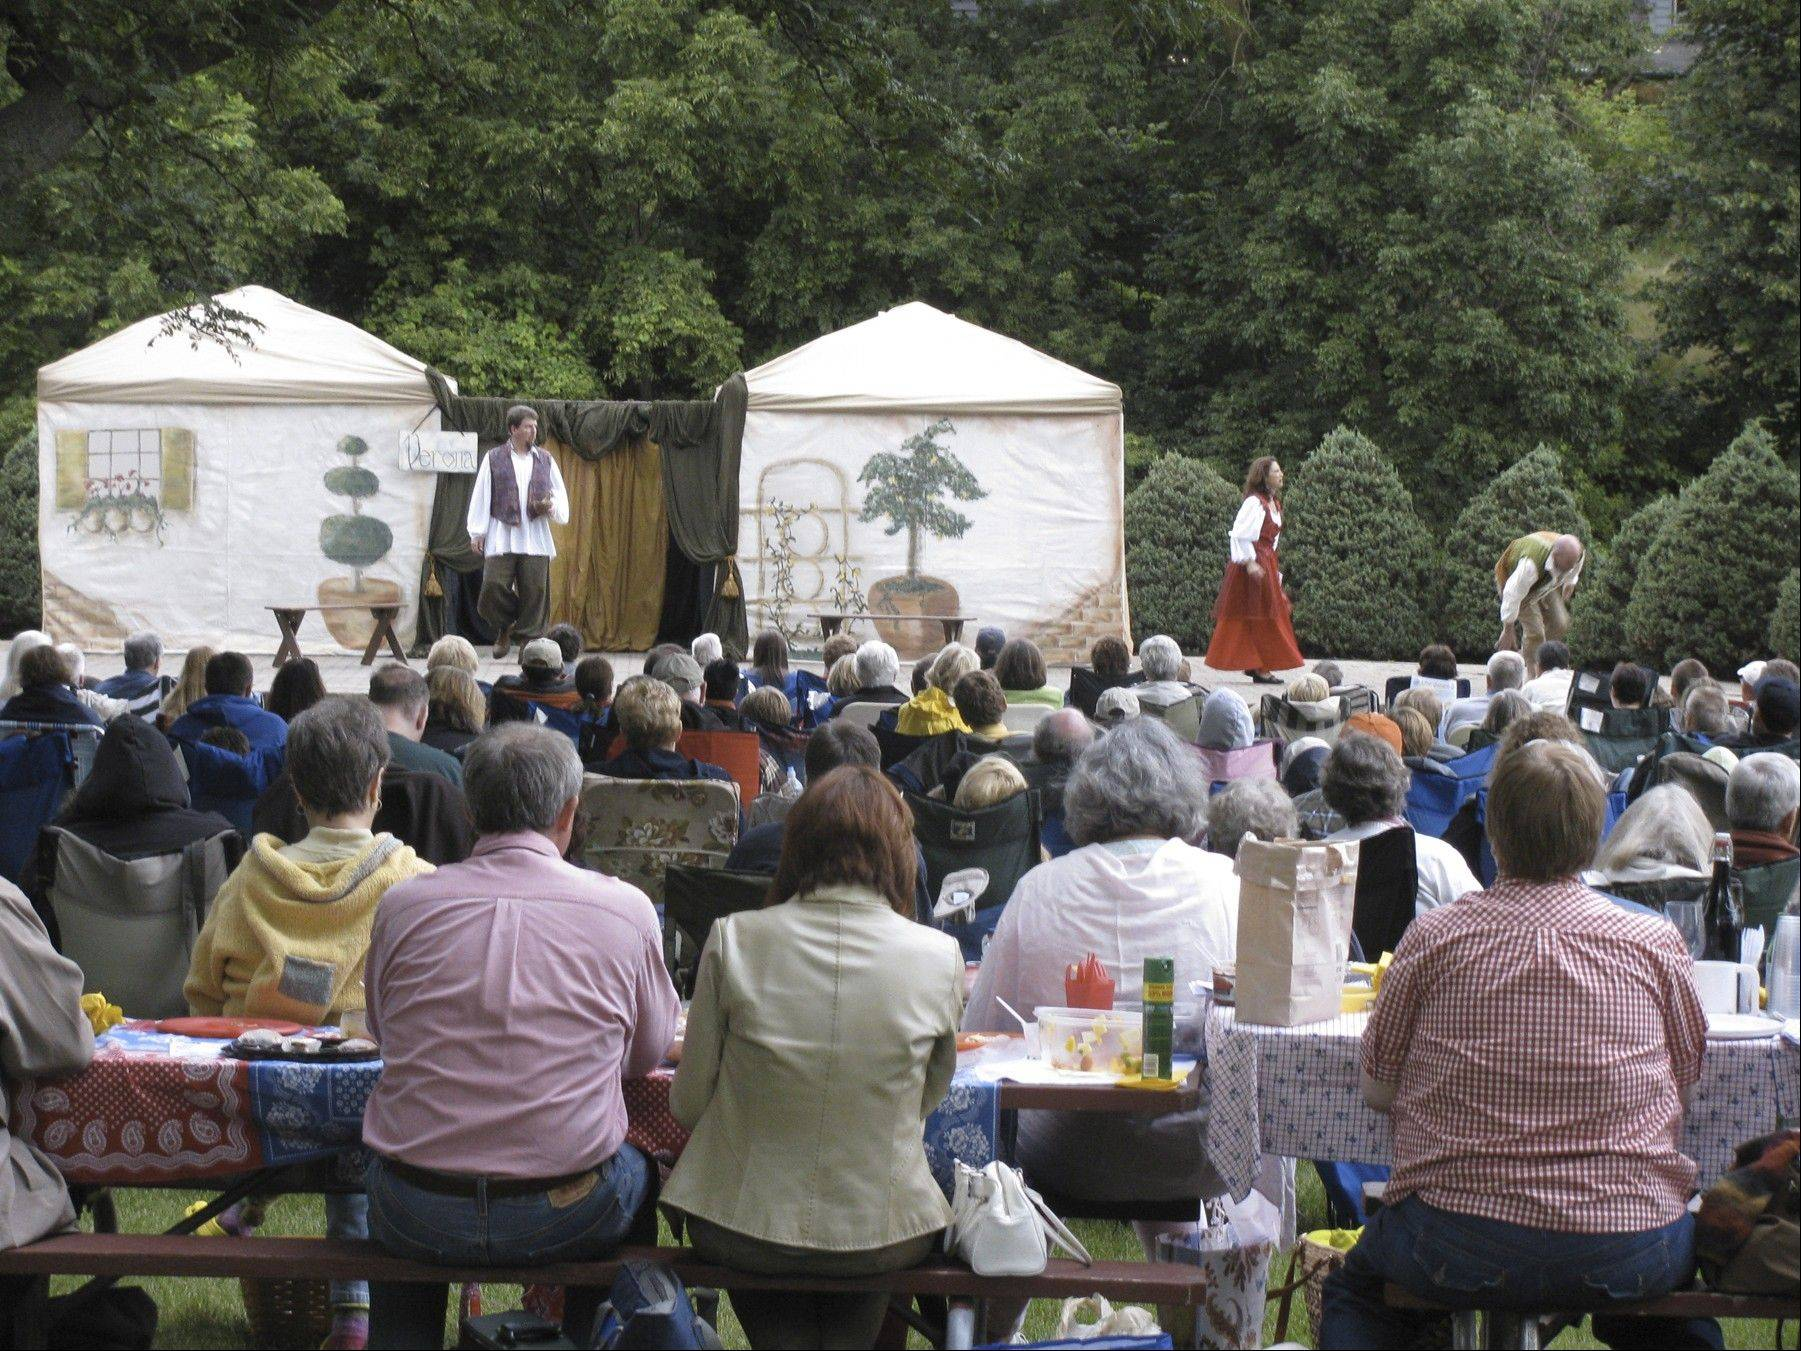 A previous Shakespeare in the Park performance drew more than 500 people to Geneva's Island Park.